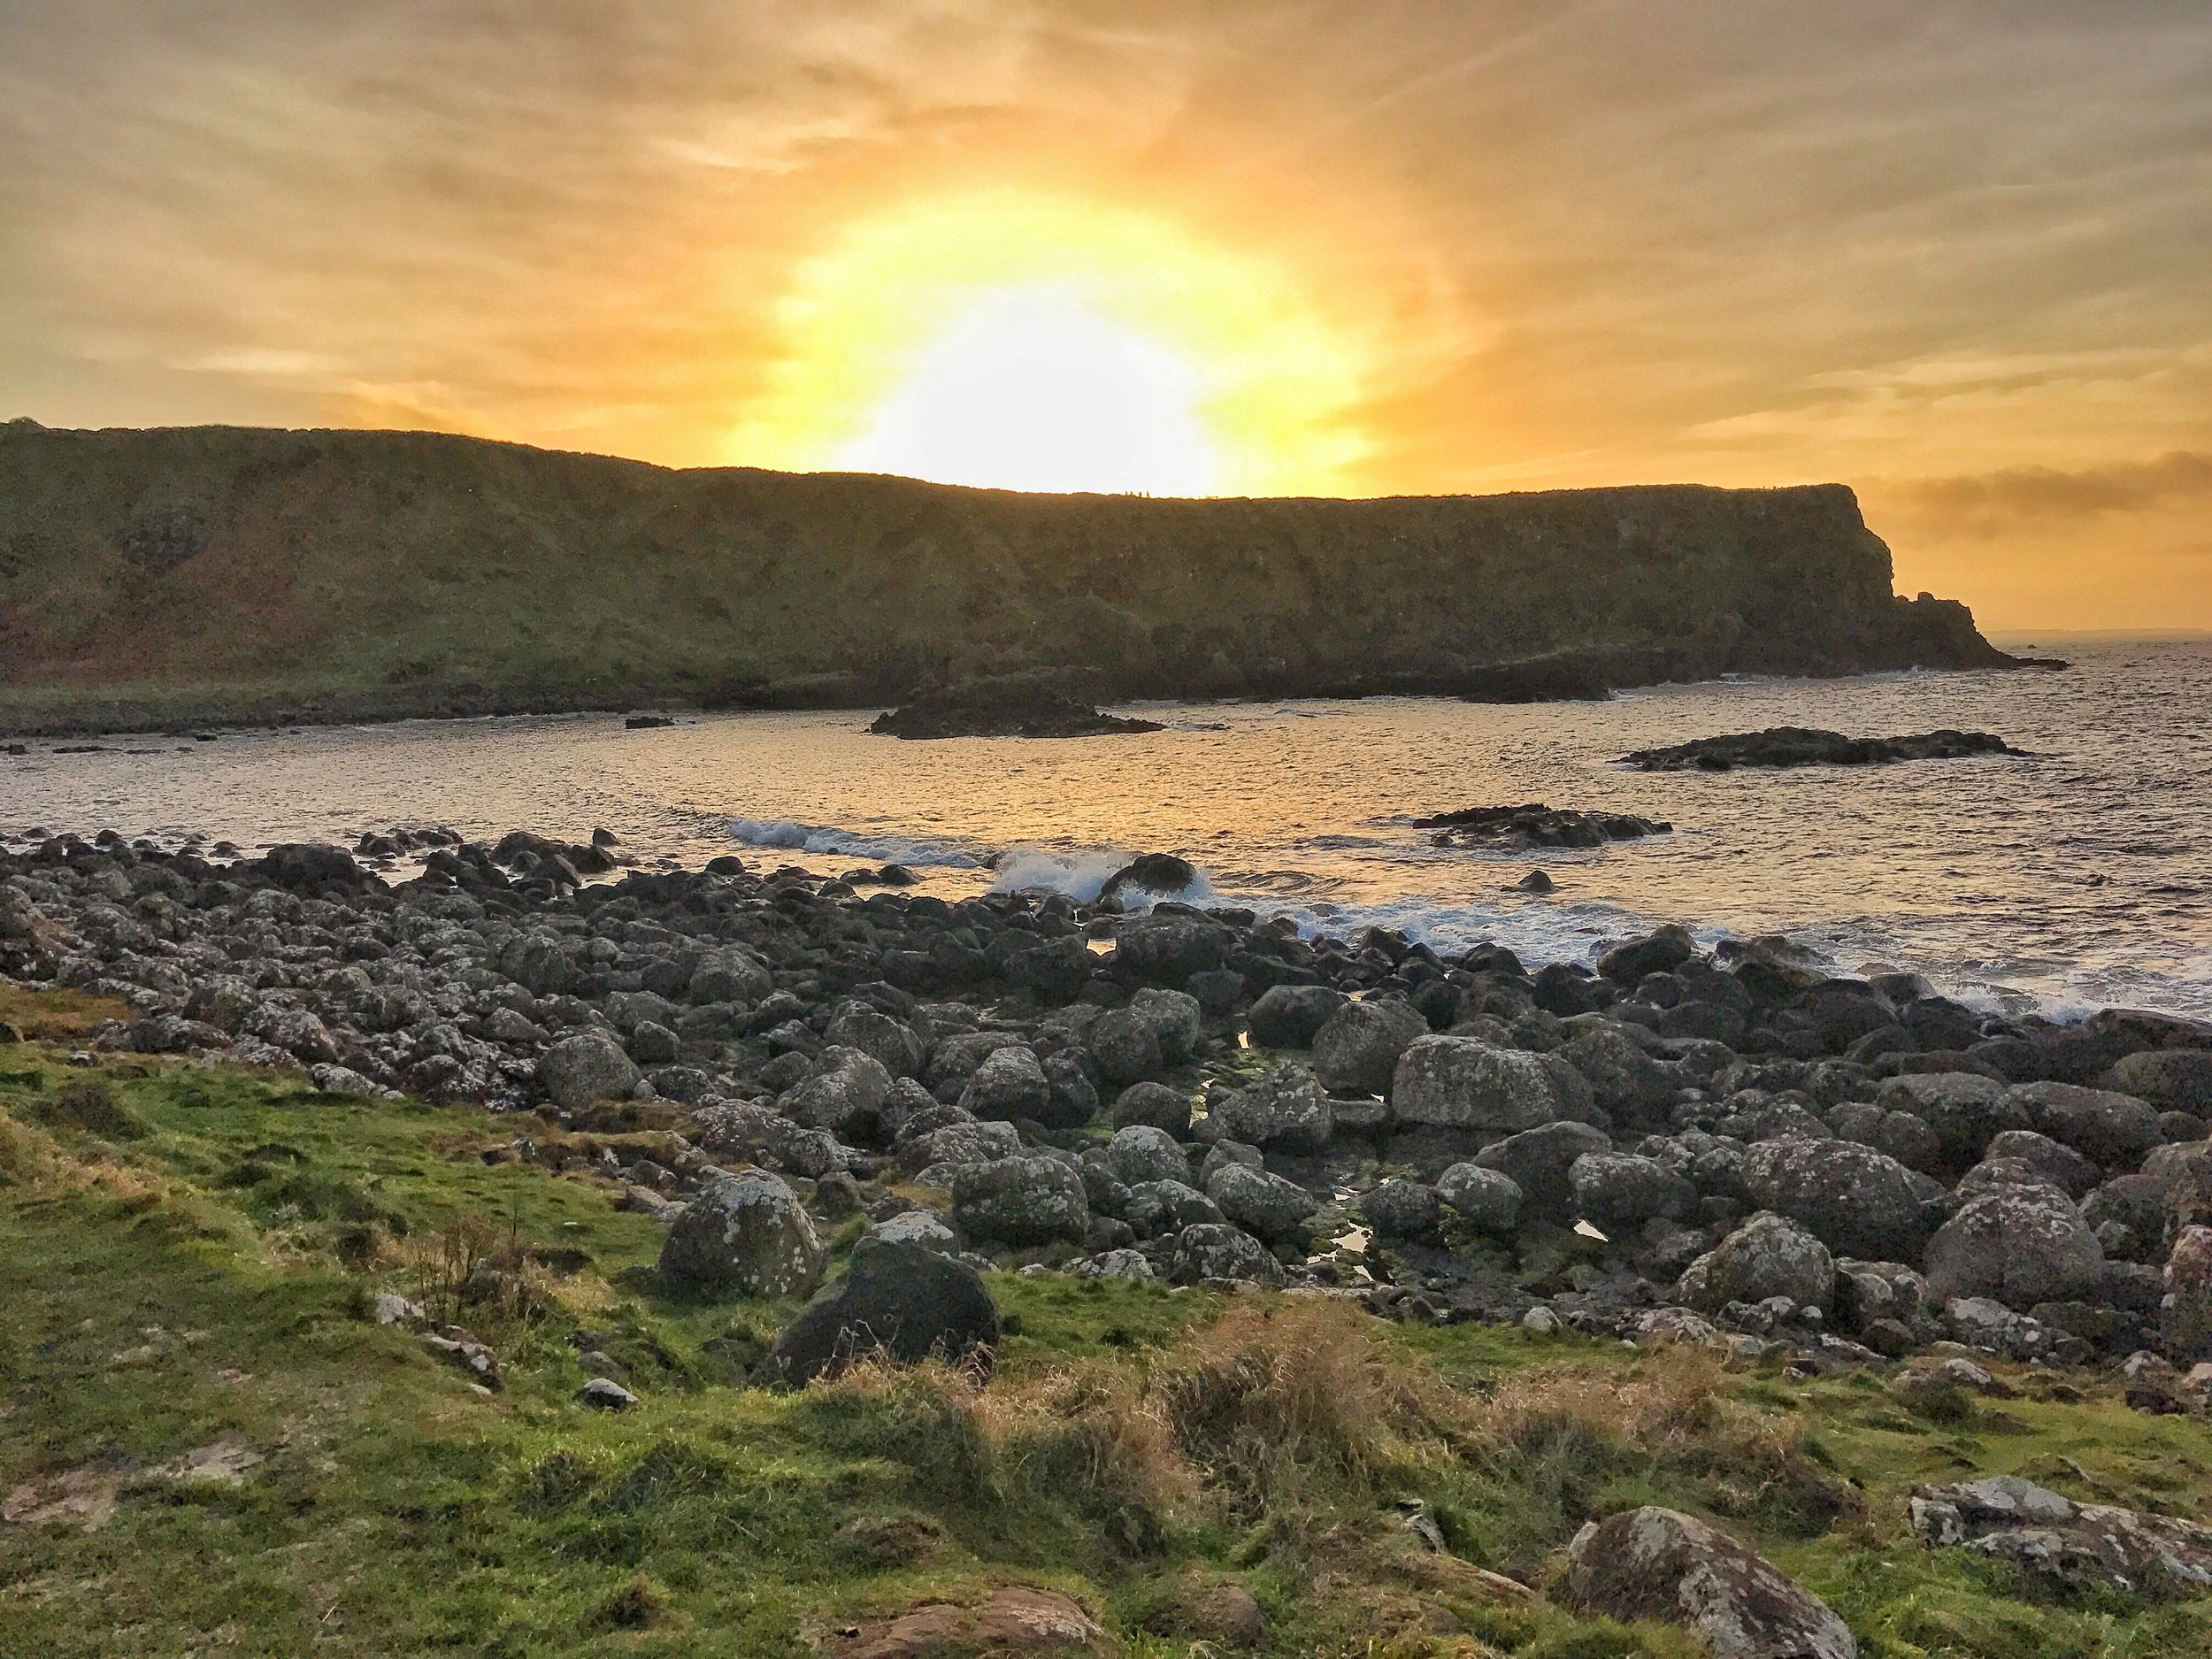 While walking to the Giant's Causeway,Portnaboe Bay has some excellent views of the Northern Atlantic Coast of Ireland.